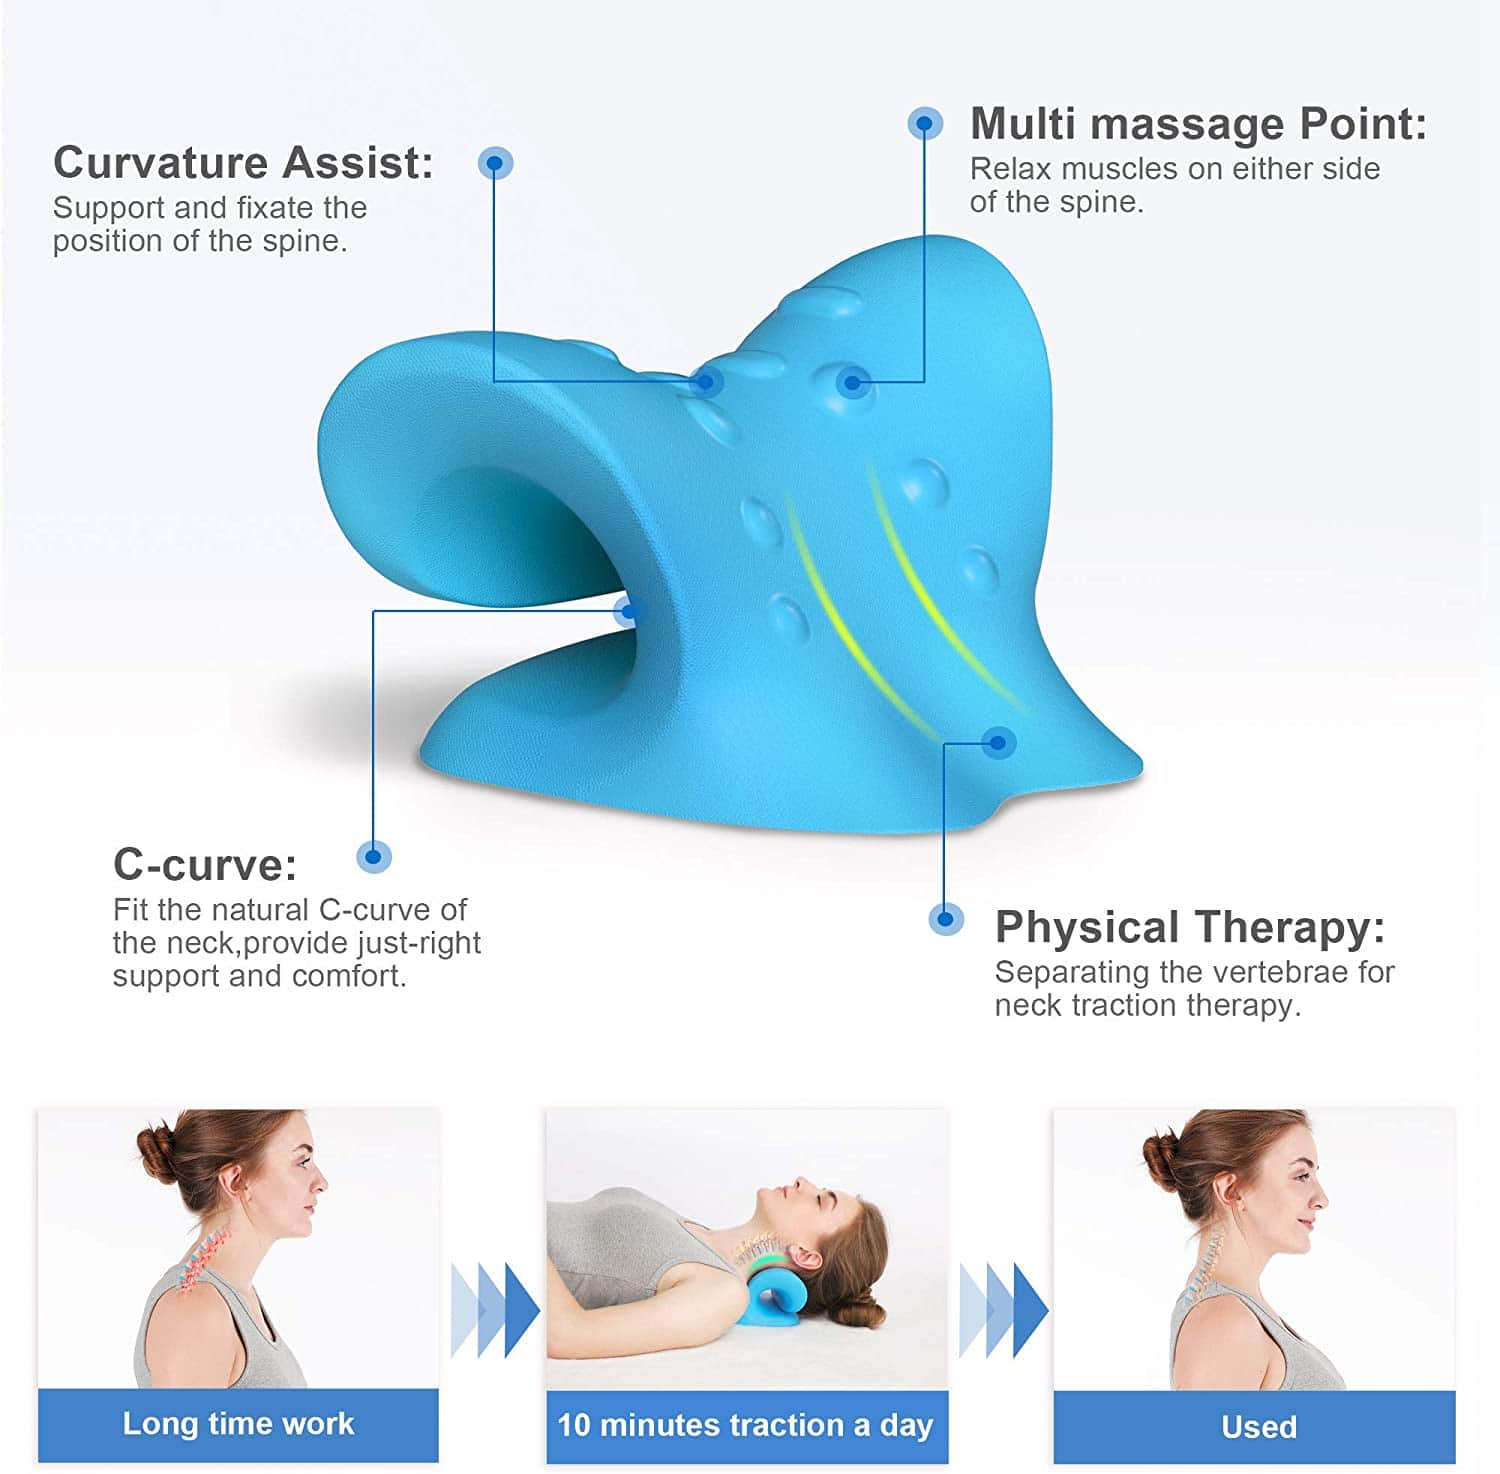 YARKOR Chiropractic Pillow / Neck Stretcher $12.60 at Amazon